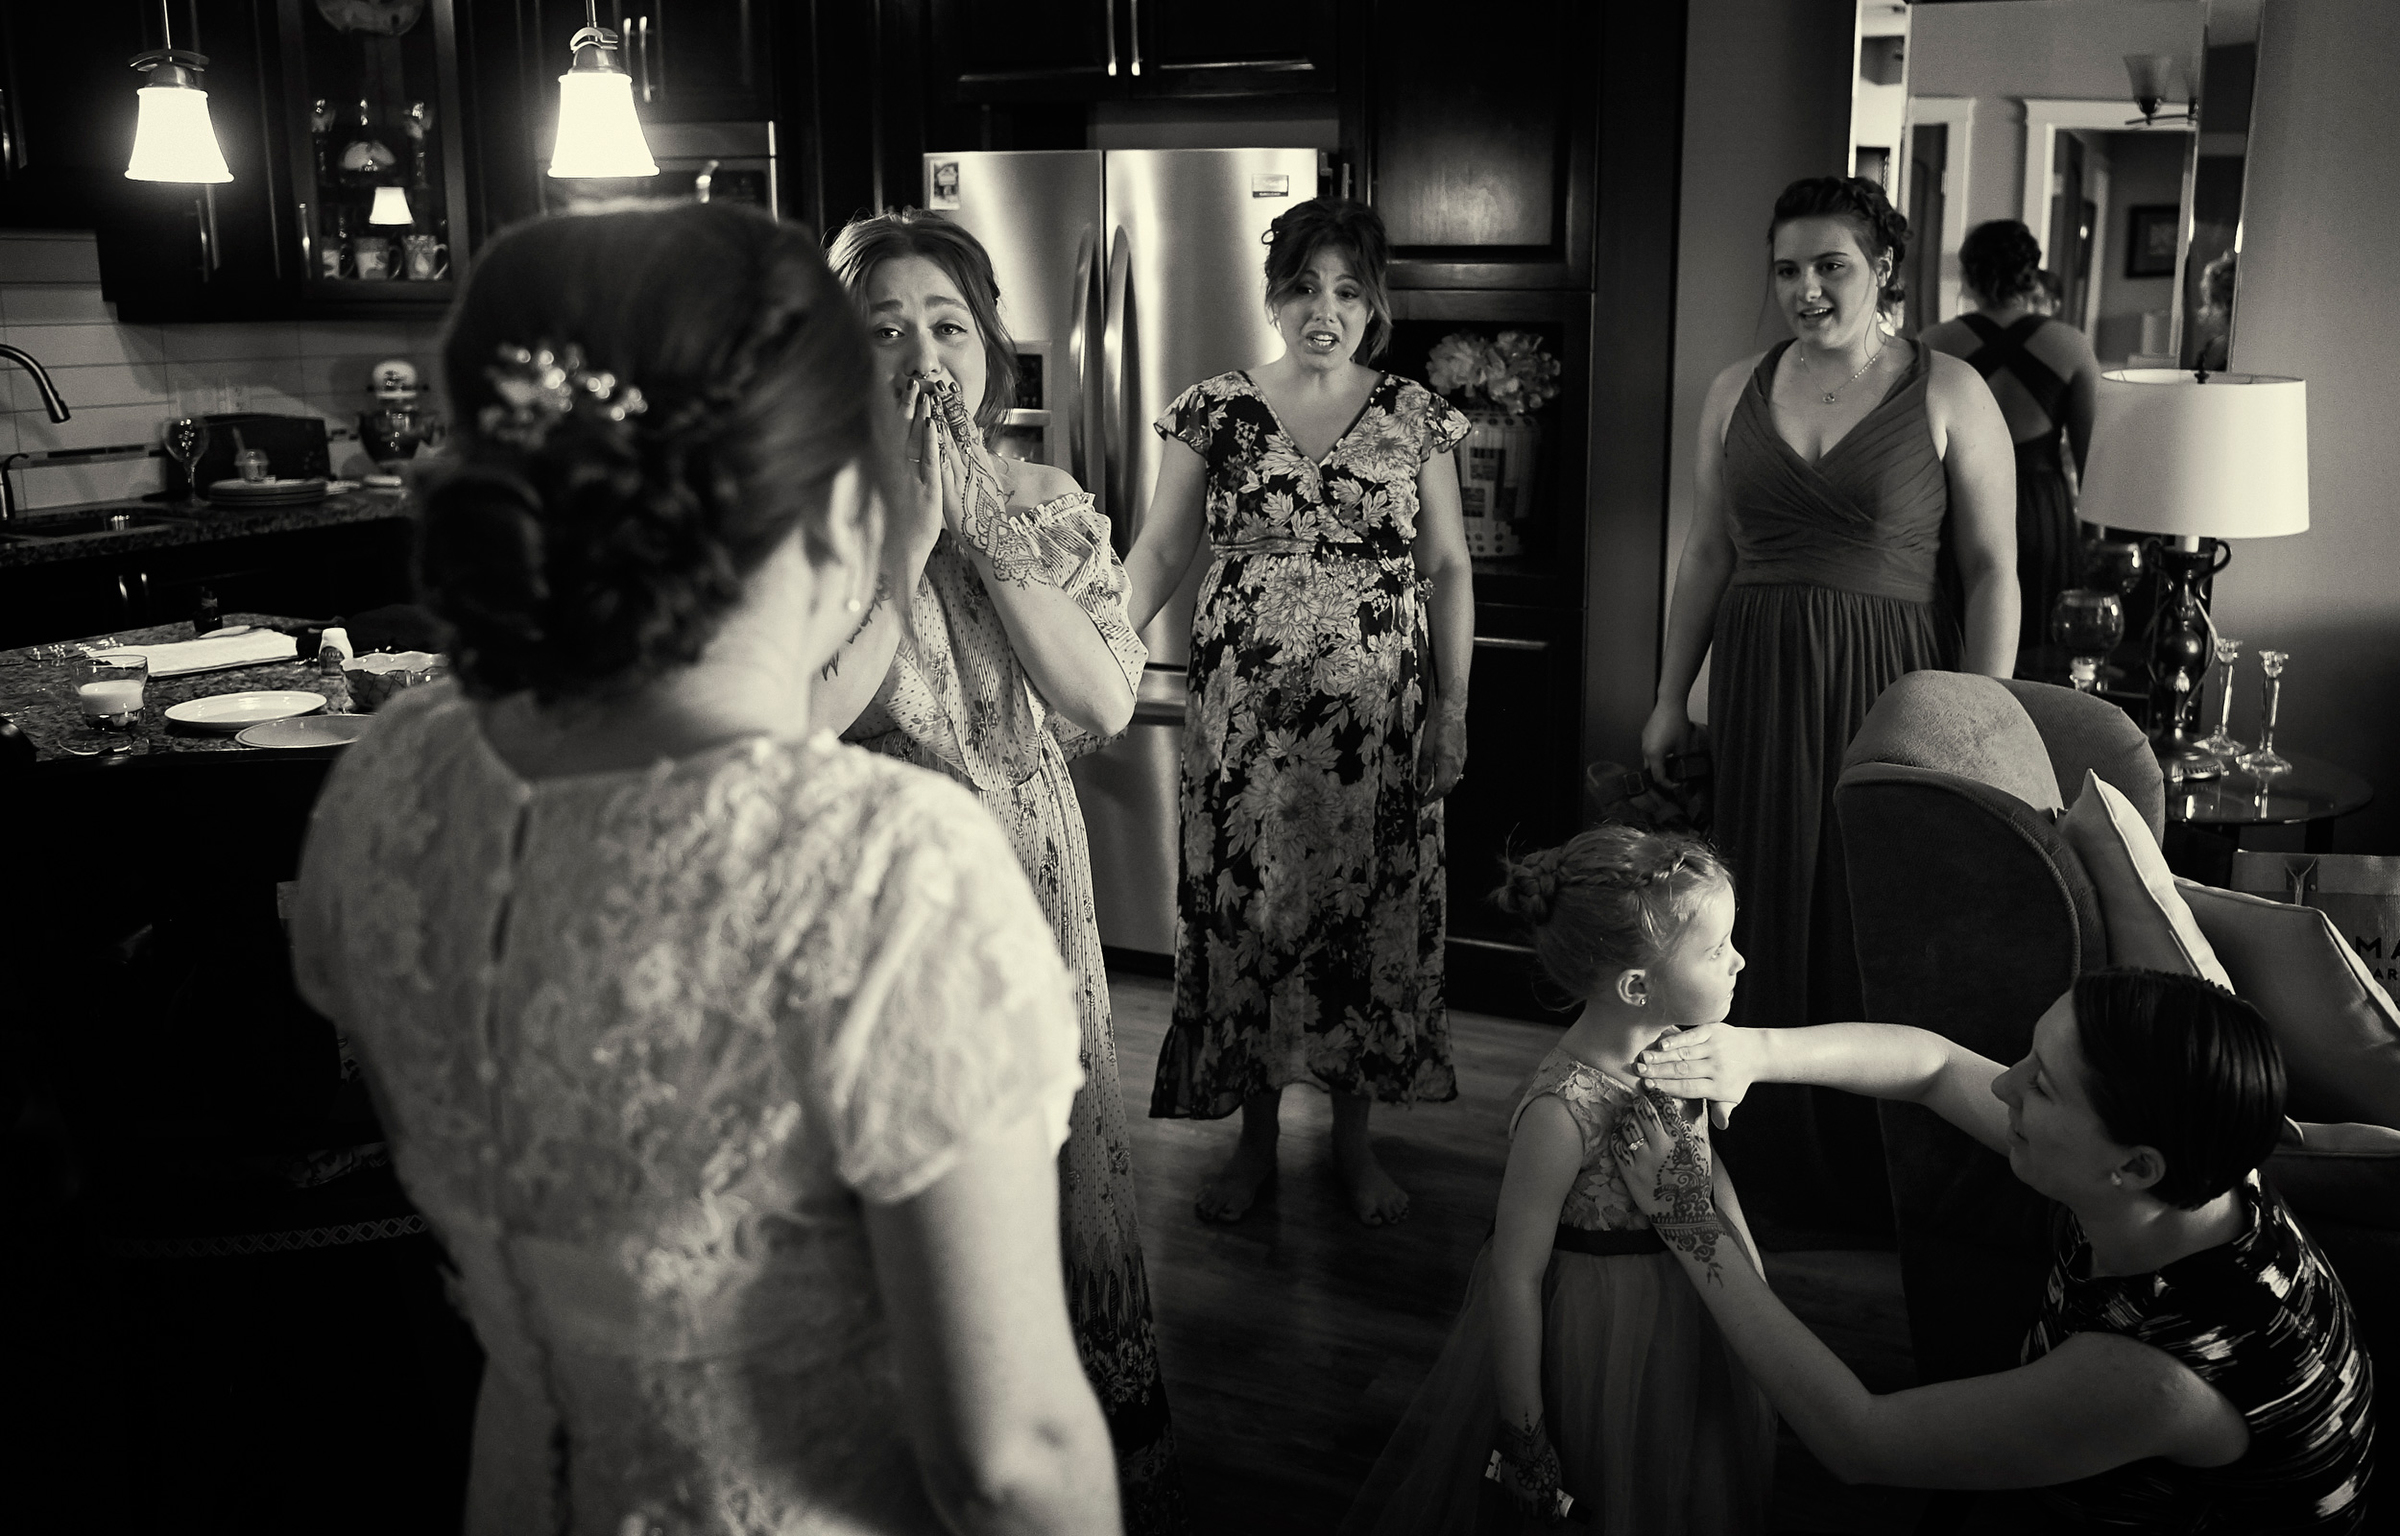 Emotional moment seeing  bride in gown - photo by Jozef Povazan Photography